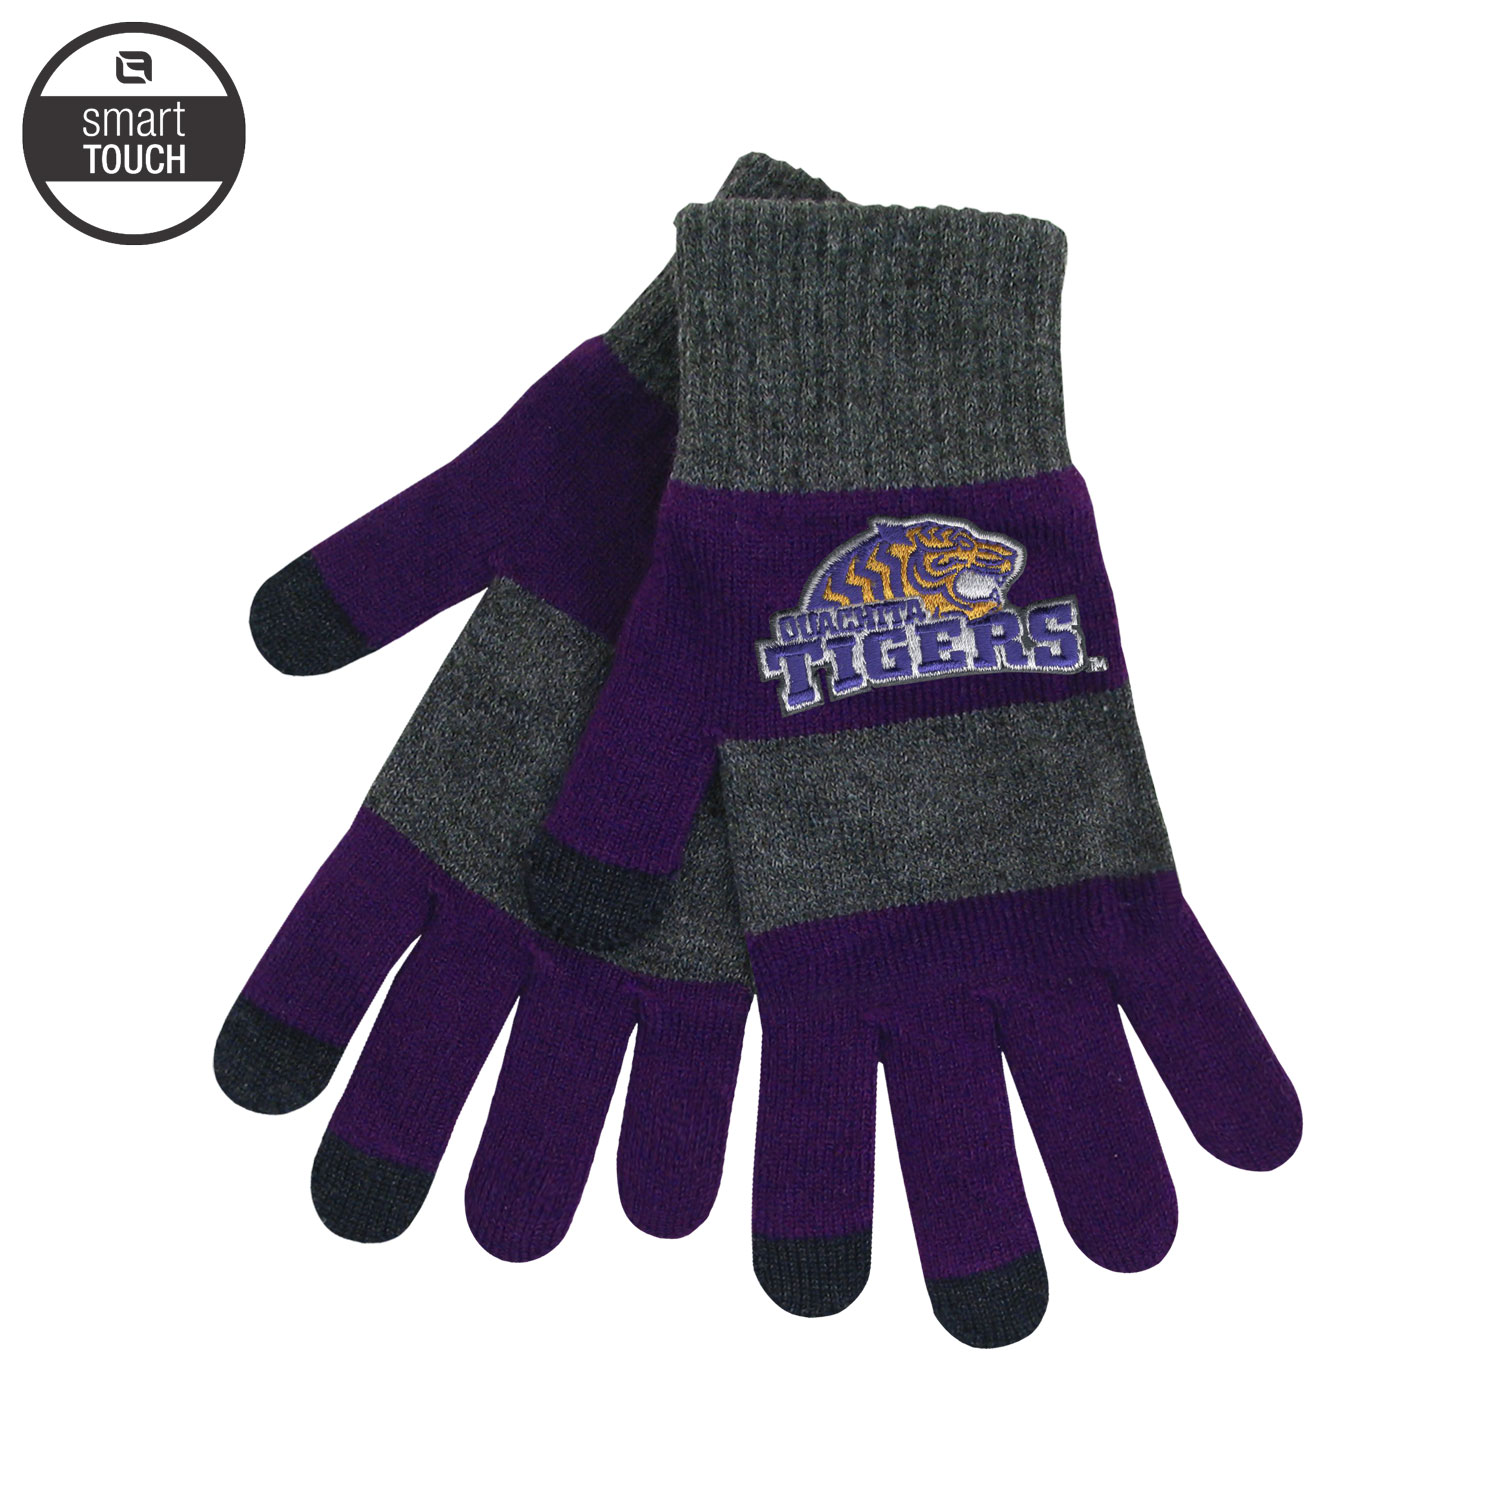 OUACHITA TIGERS TRIXIE GLOVES WITH TEXTING TIPS